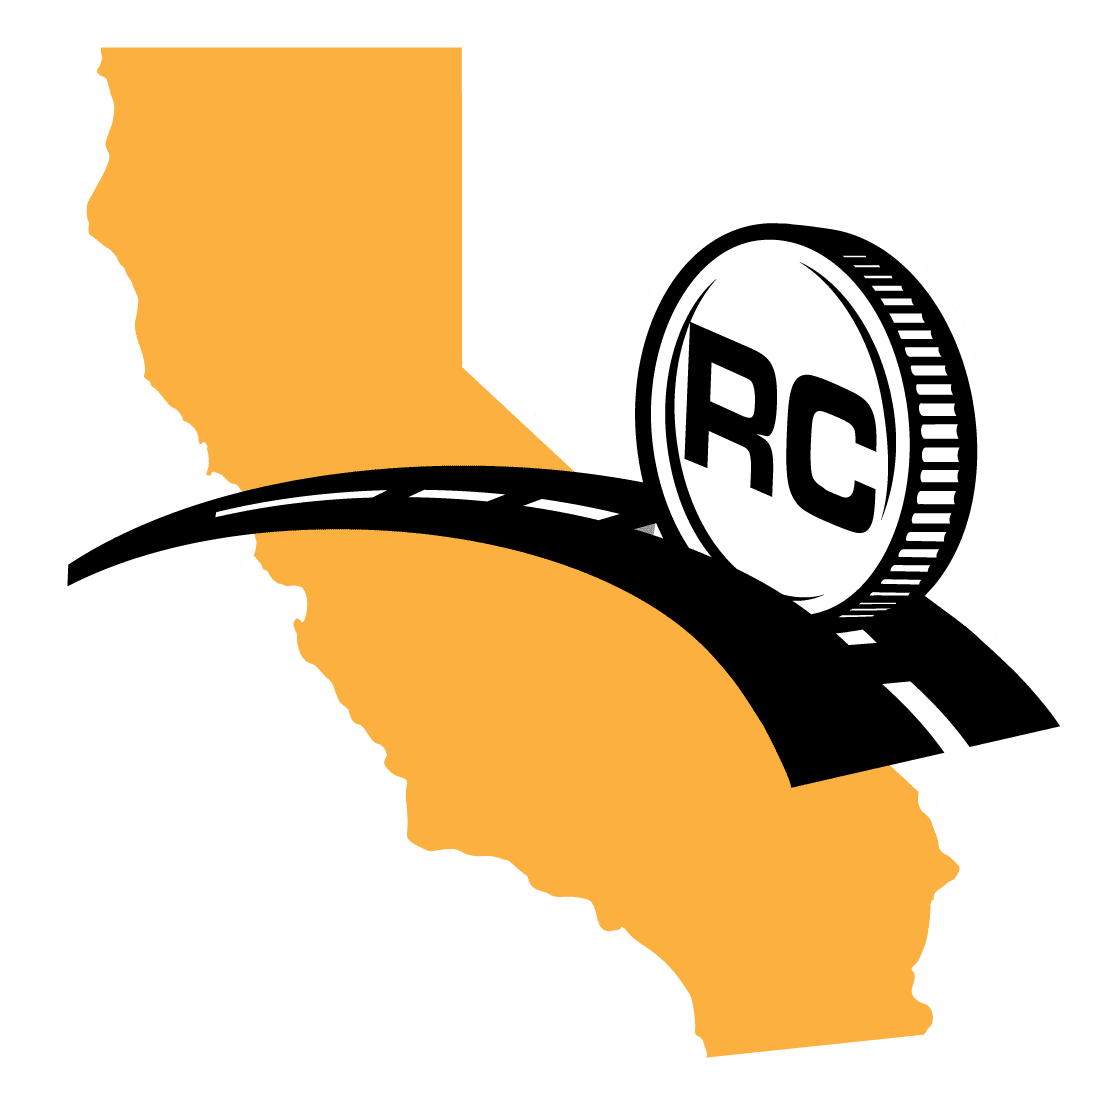 Pricing california launches charge. Highway clipart rough road